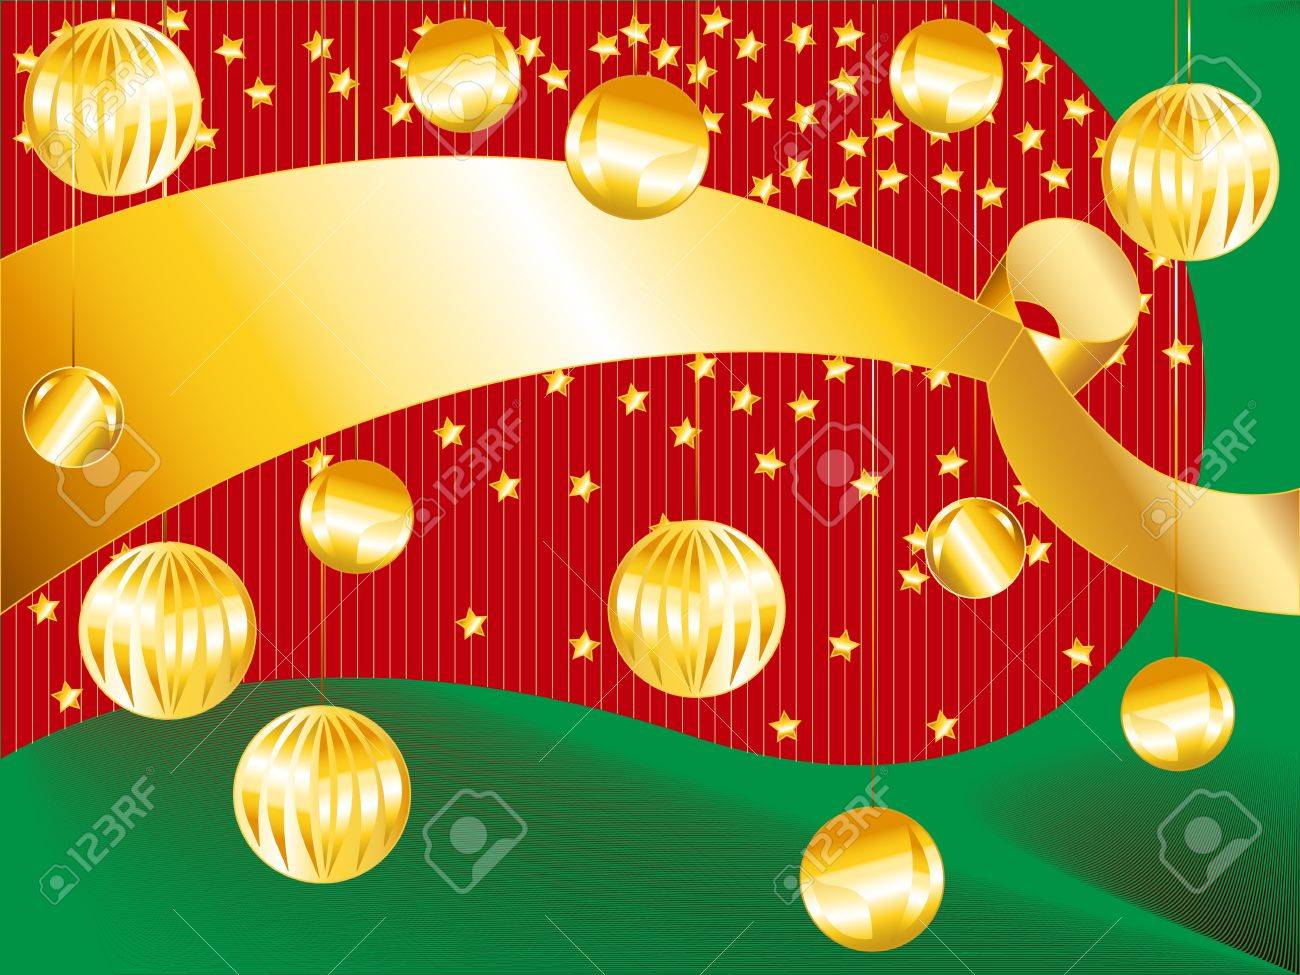 Perfect Holiday Card With Gold Ribbon And Christmas Ornaments On Funky Red  And Green Wavy Striped